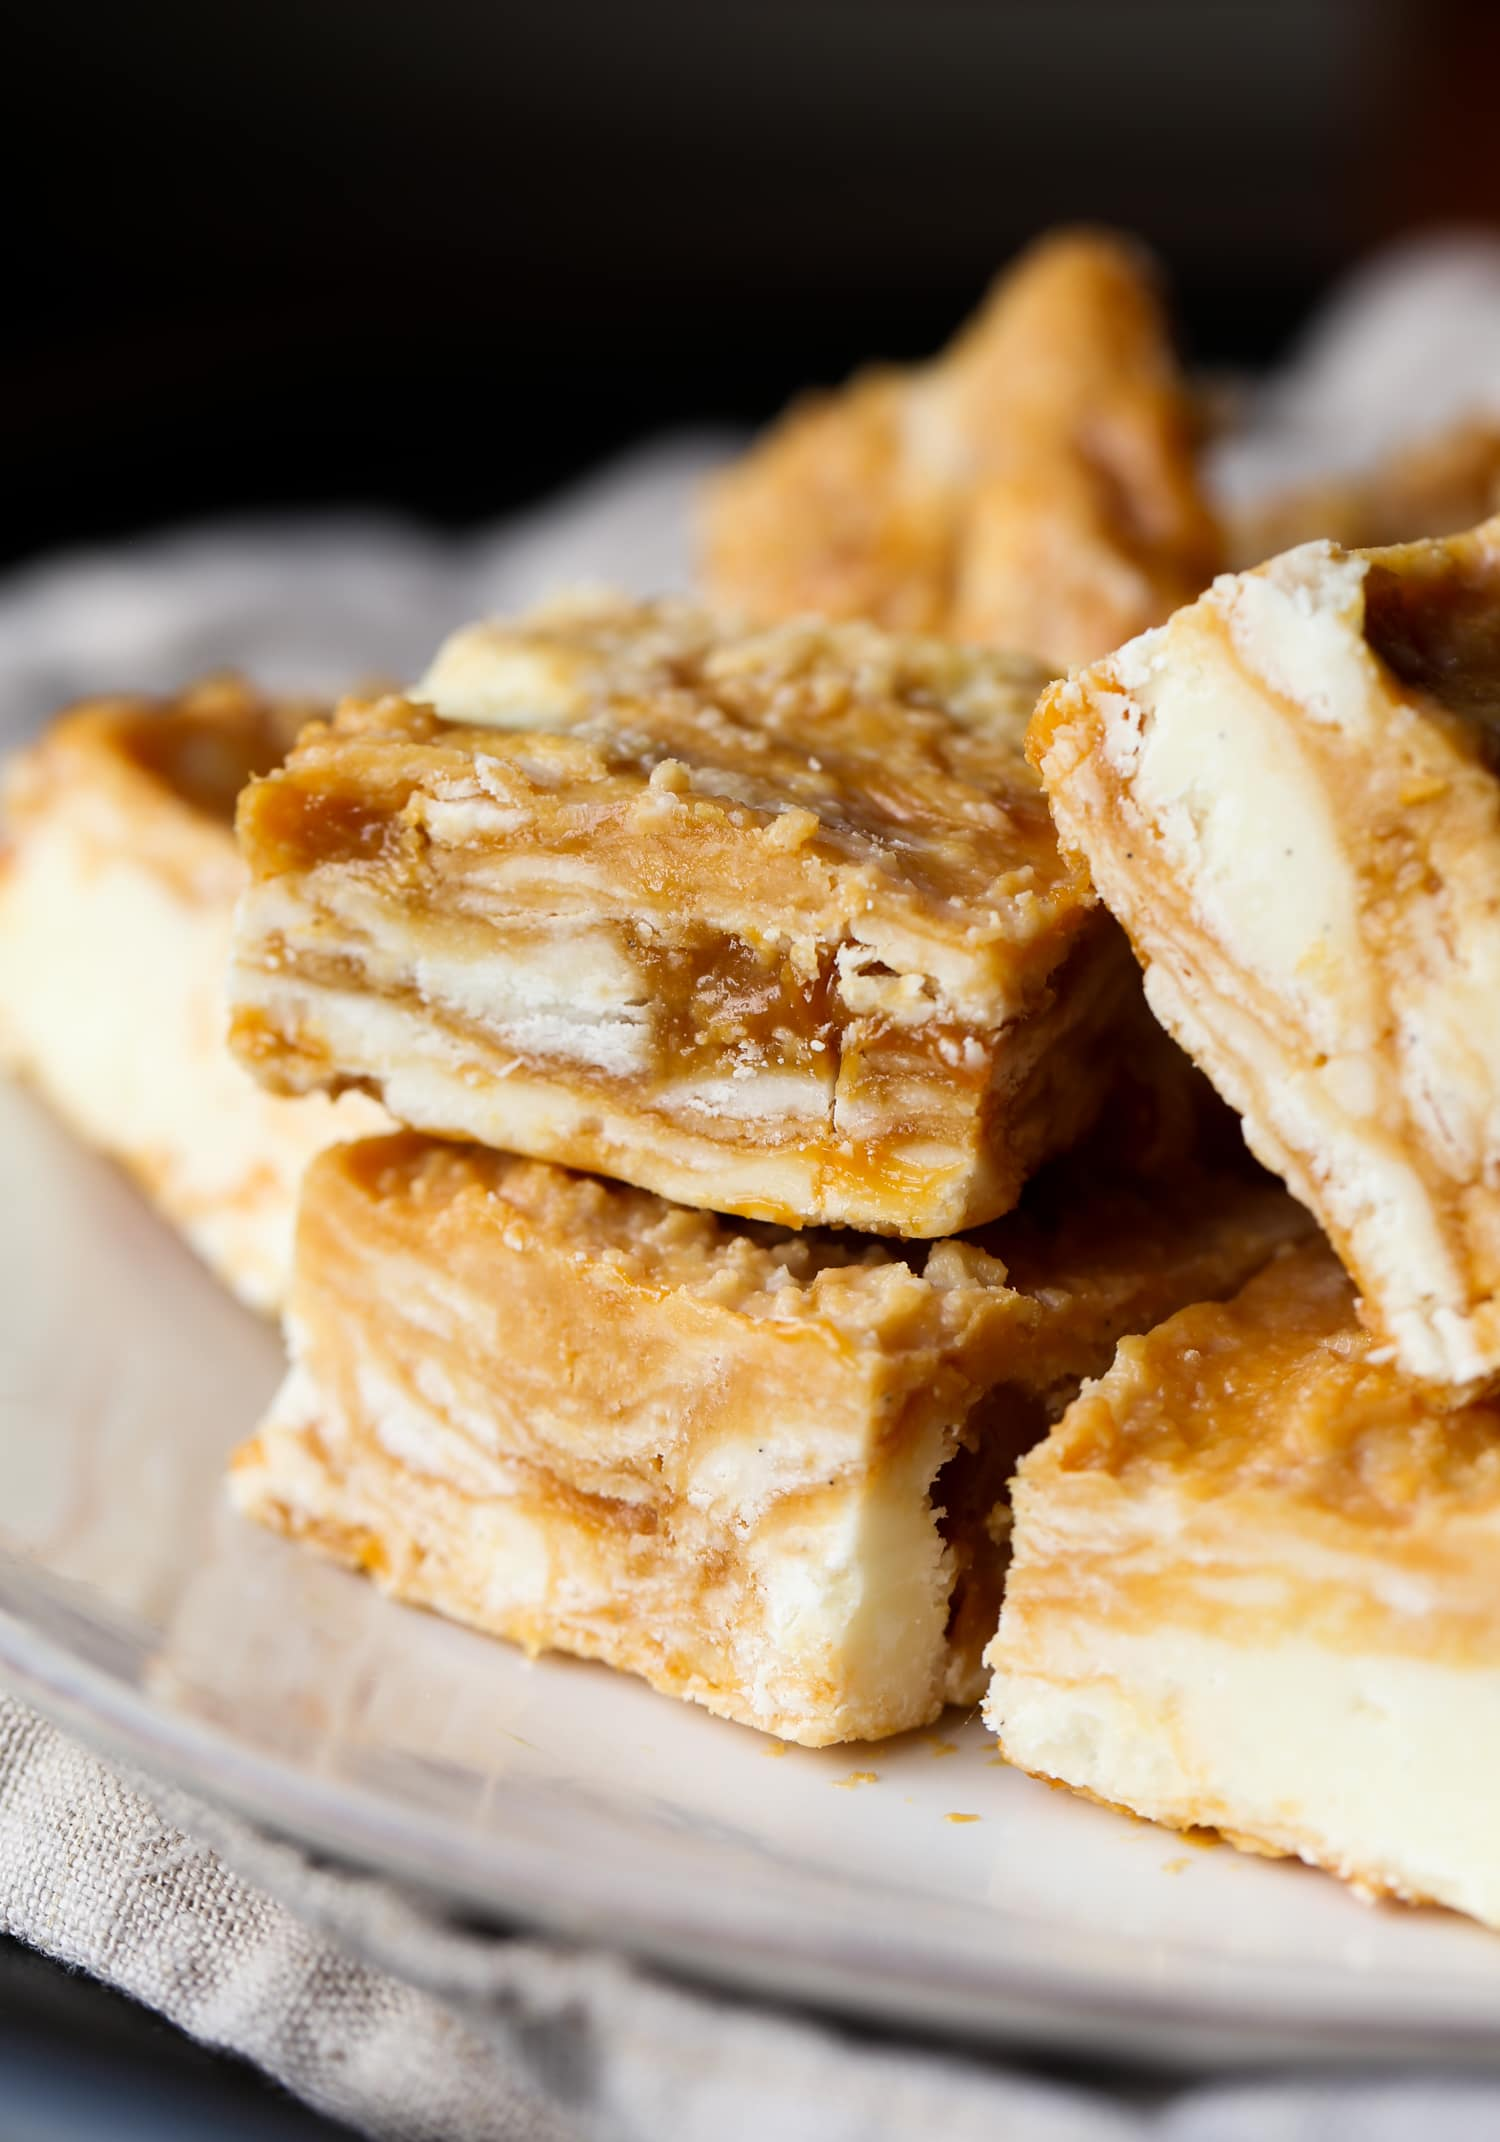 White Chocolate Dulce de Leche swirled Fudge is sweet & rich. Oh those ribbons of Dulce de Leche!